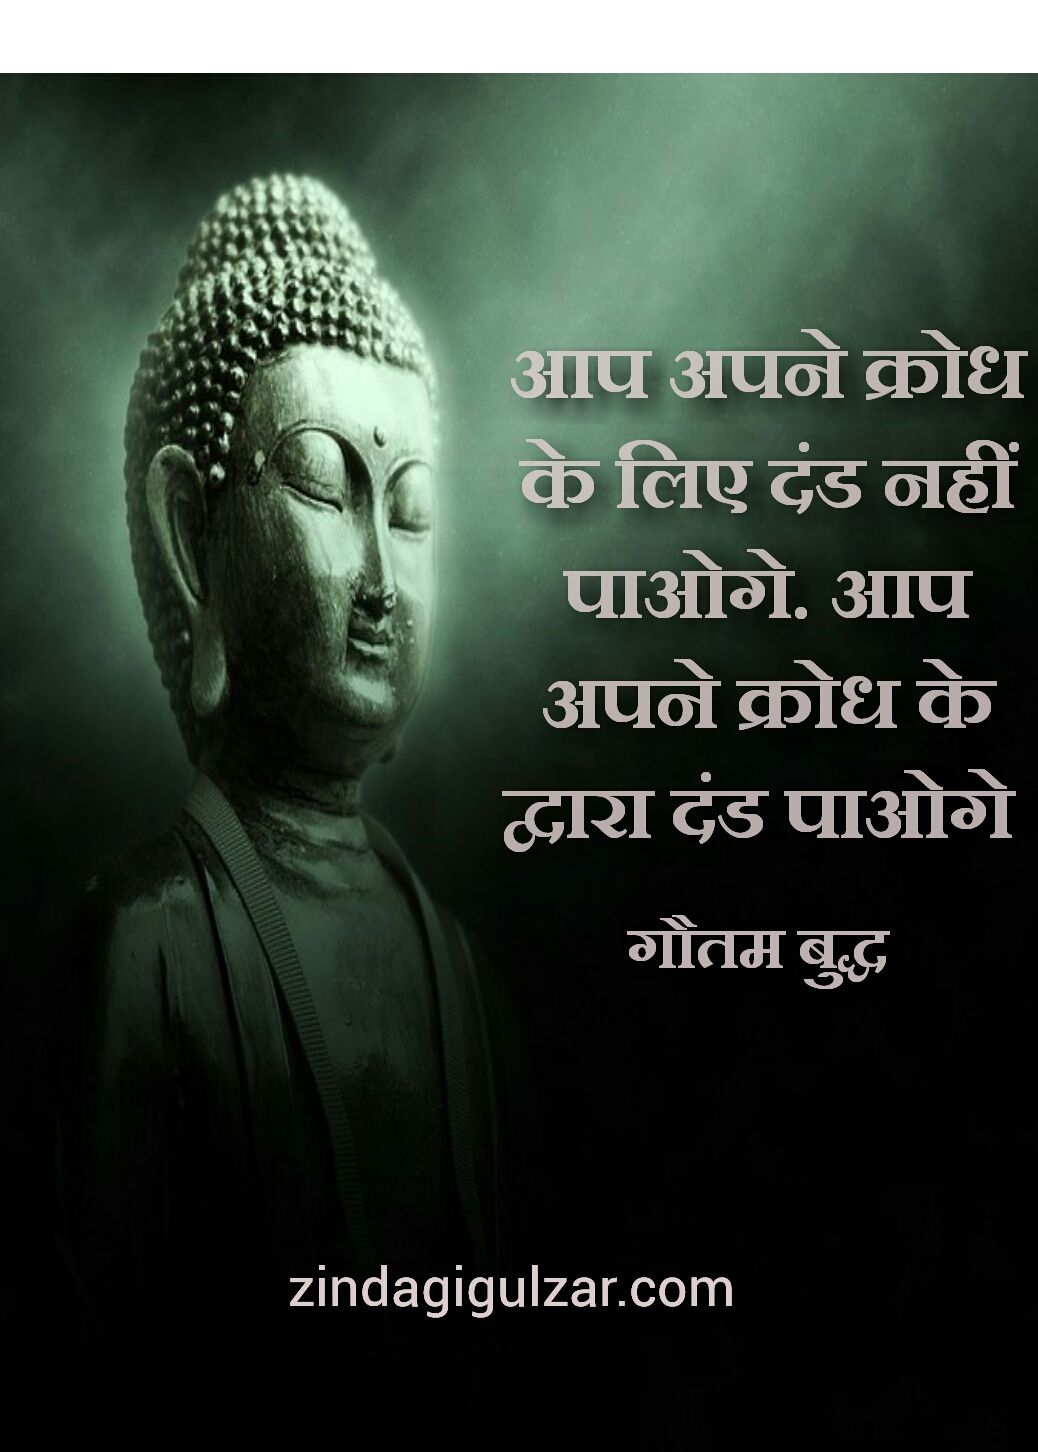 15 Buddha Love Quotes In Hindi Love Quotes Collection Within Hd Images